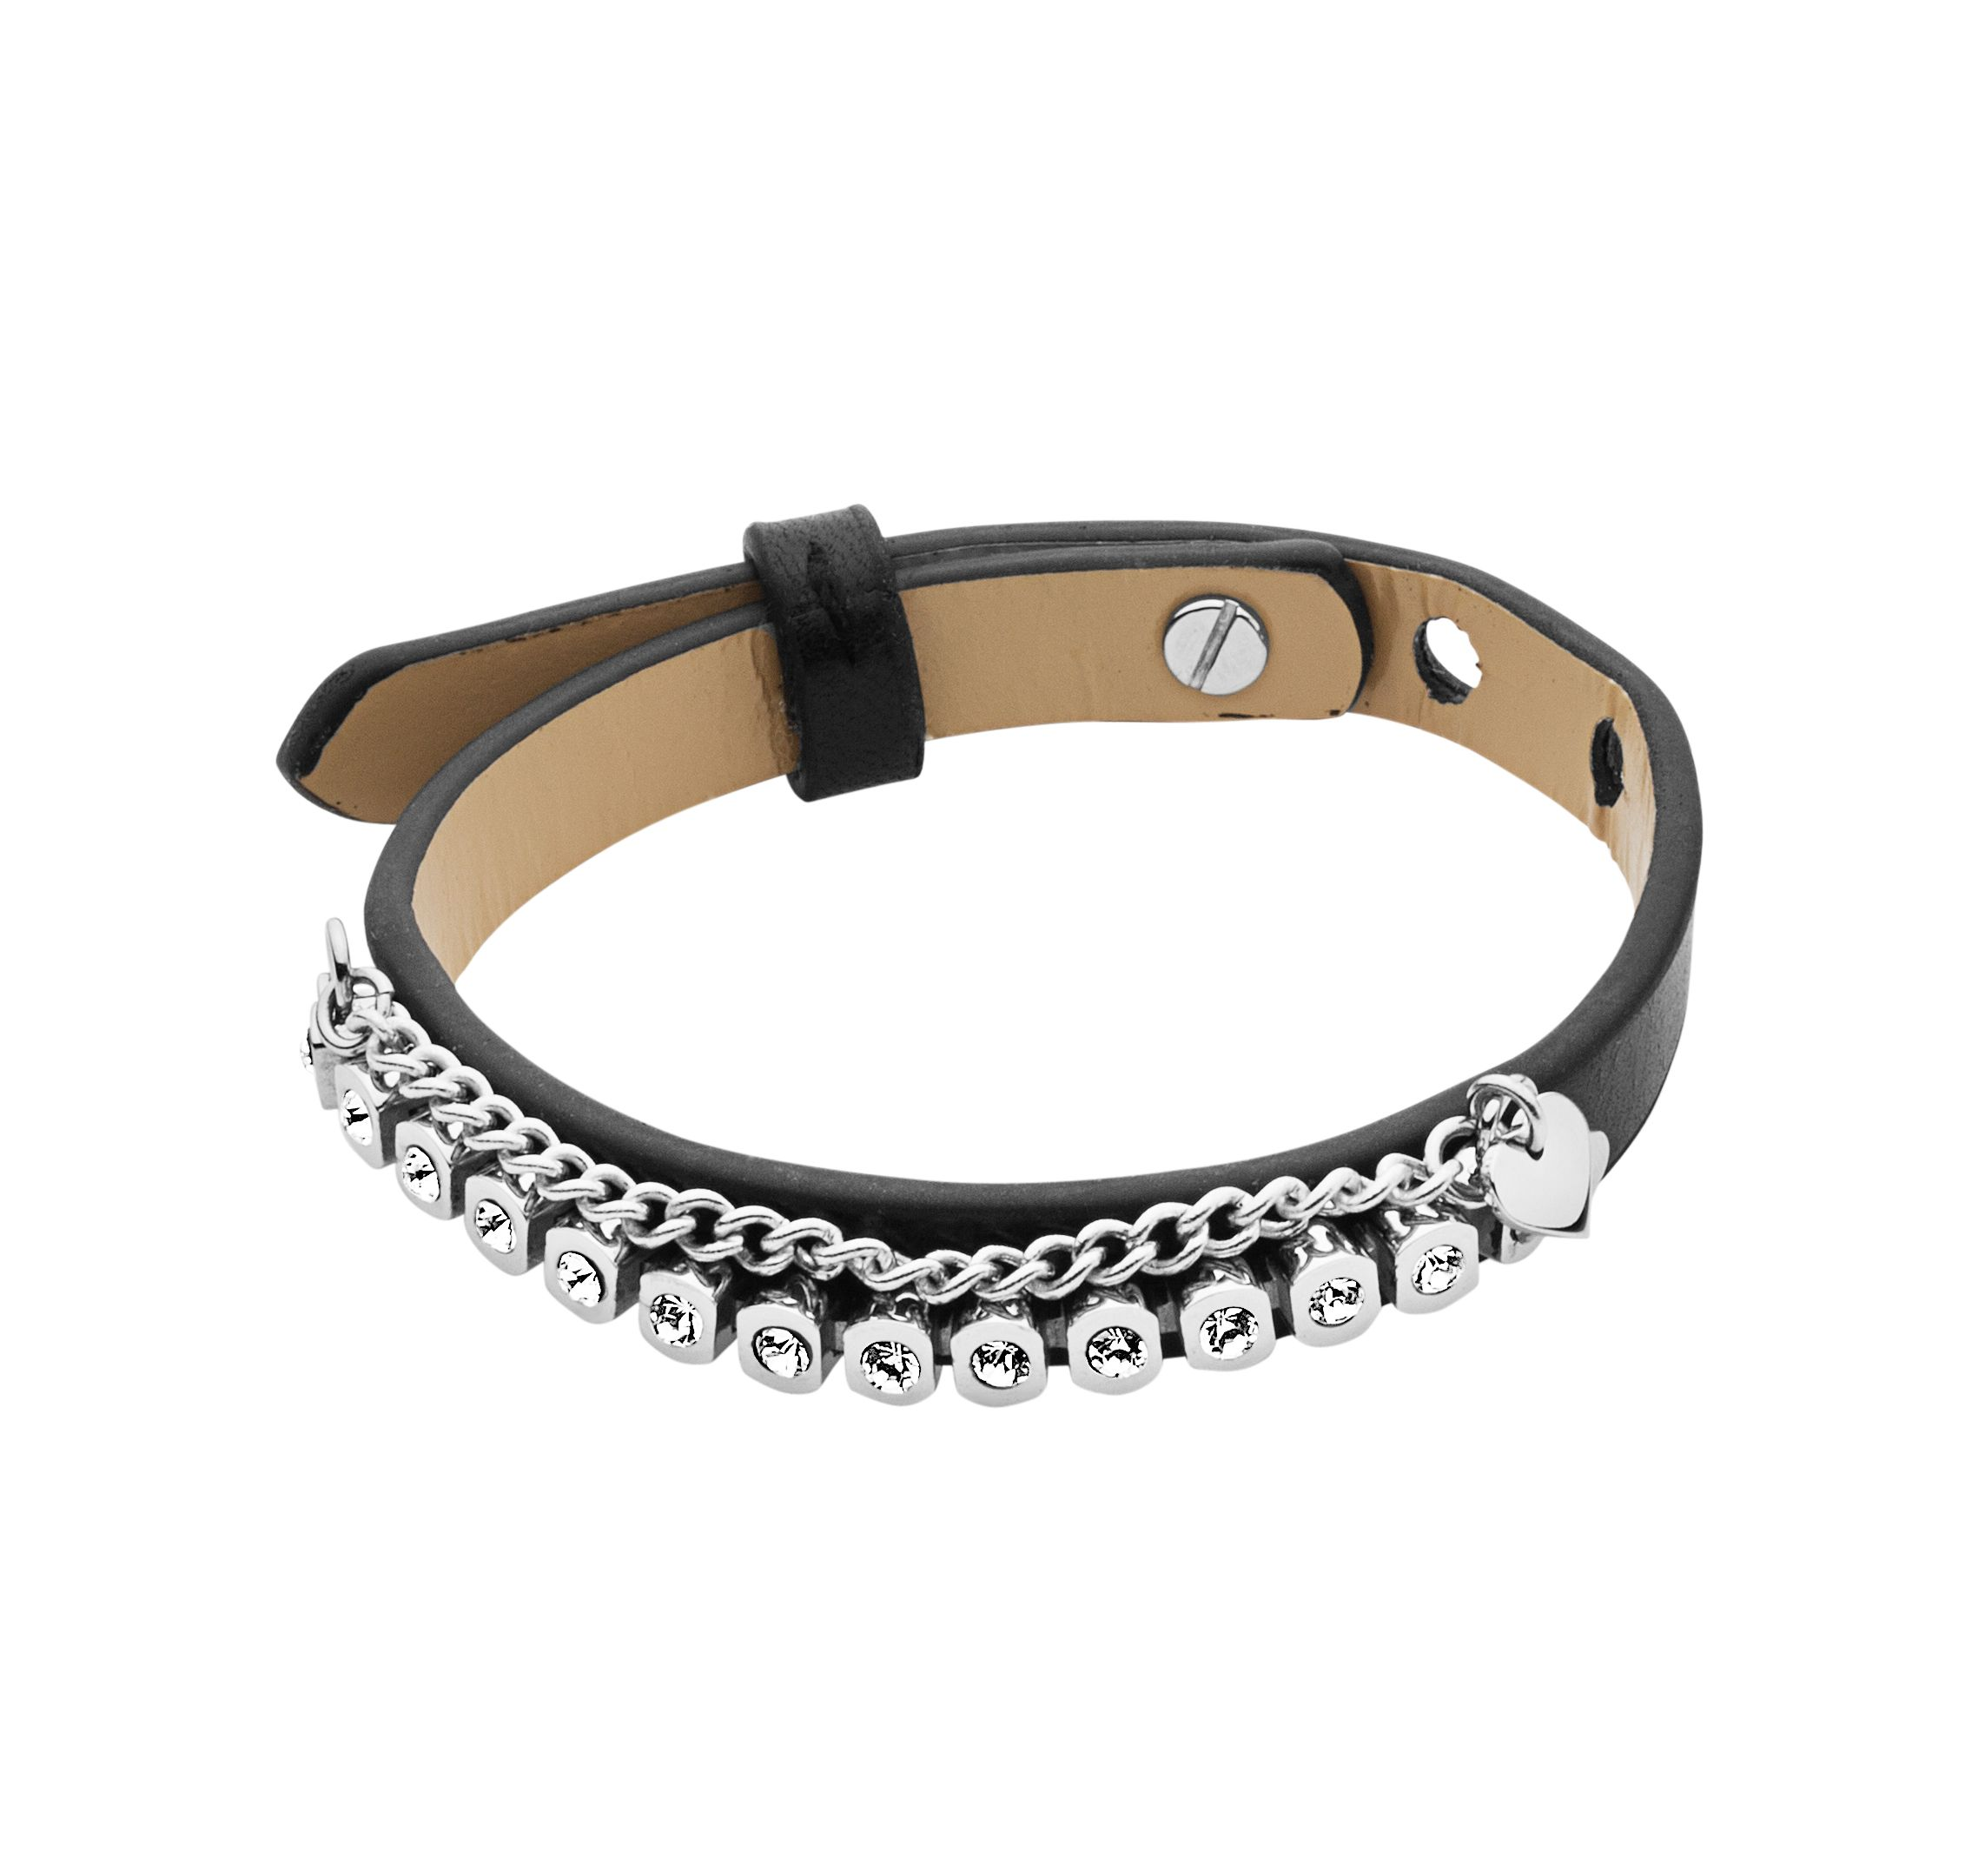 Titania black leather bracelet